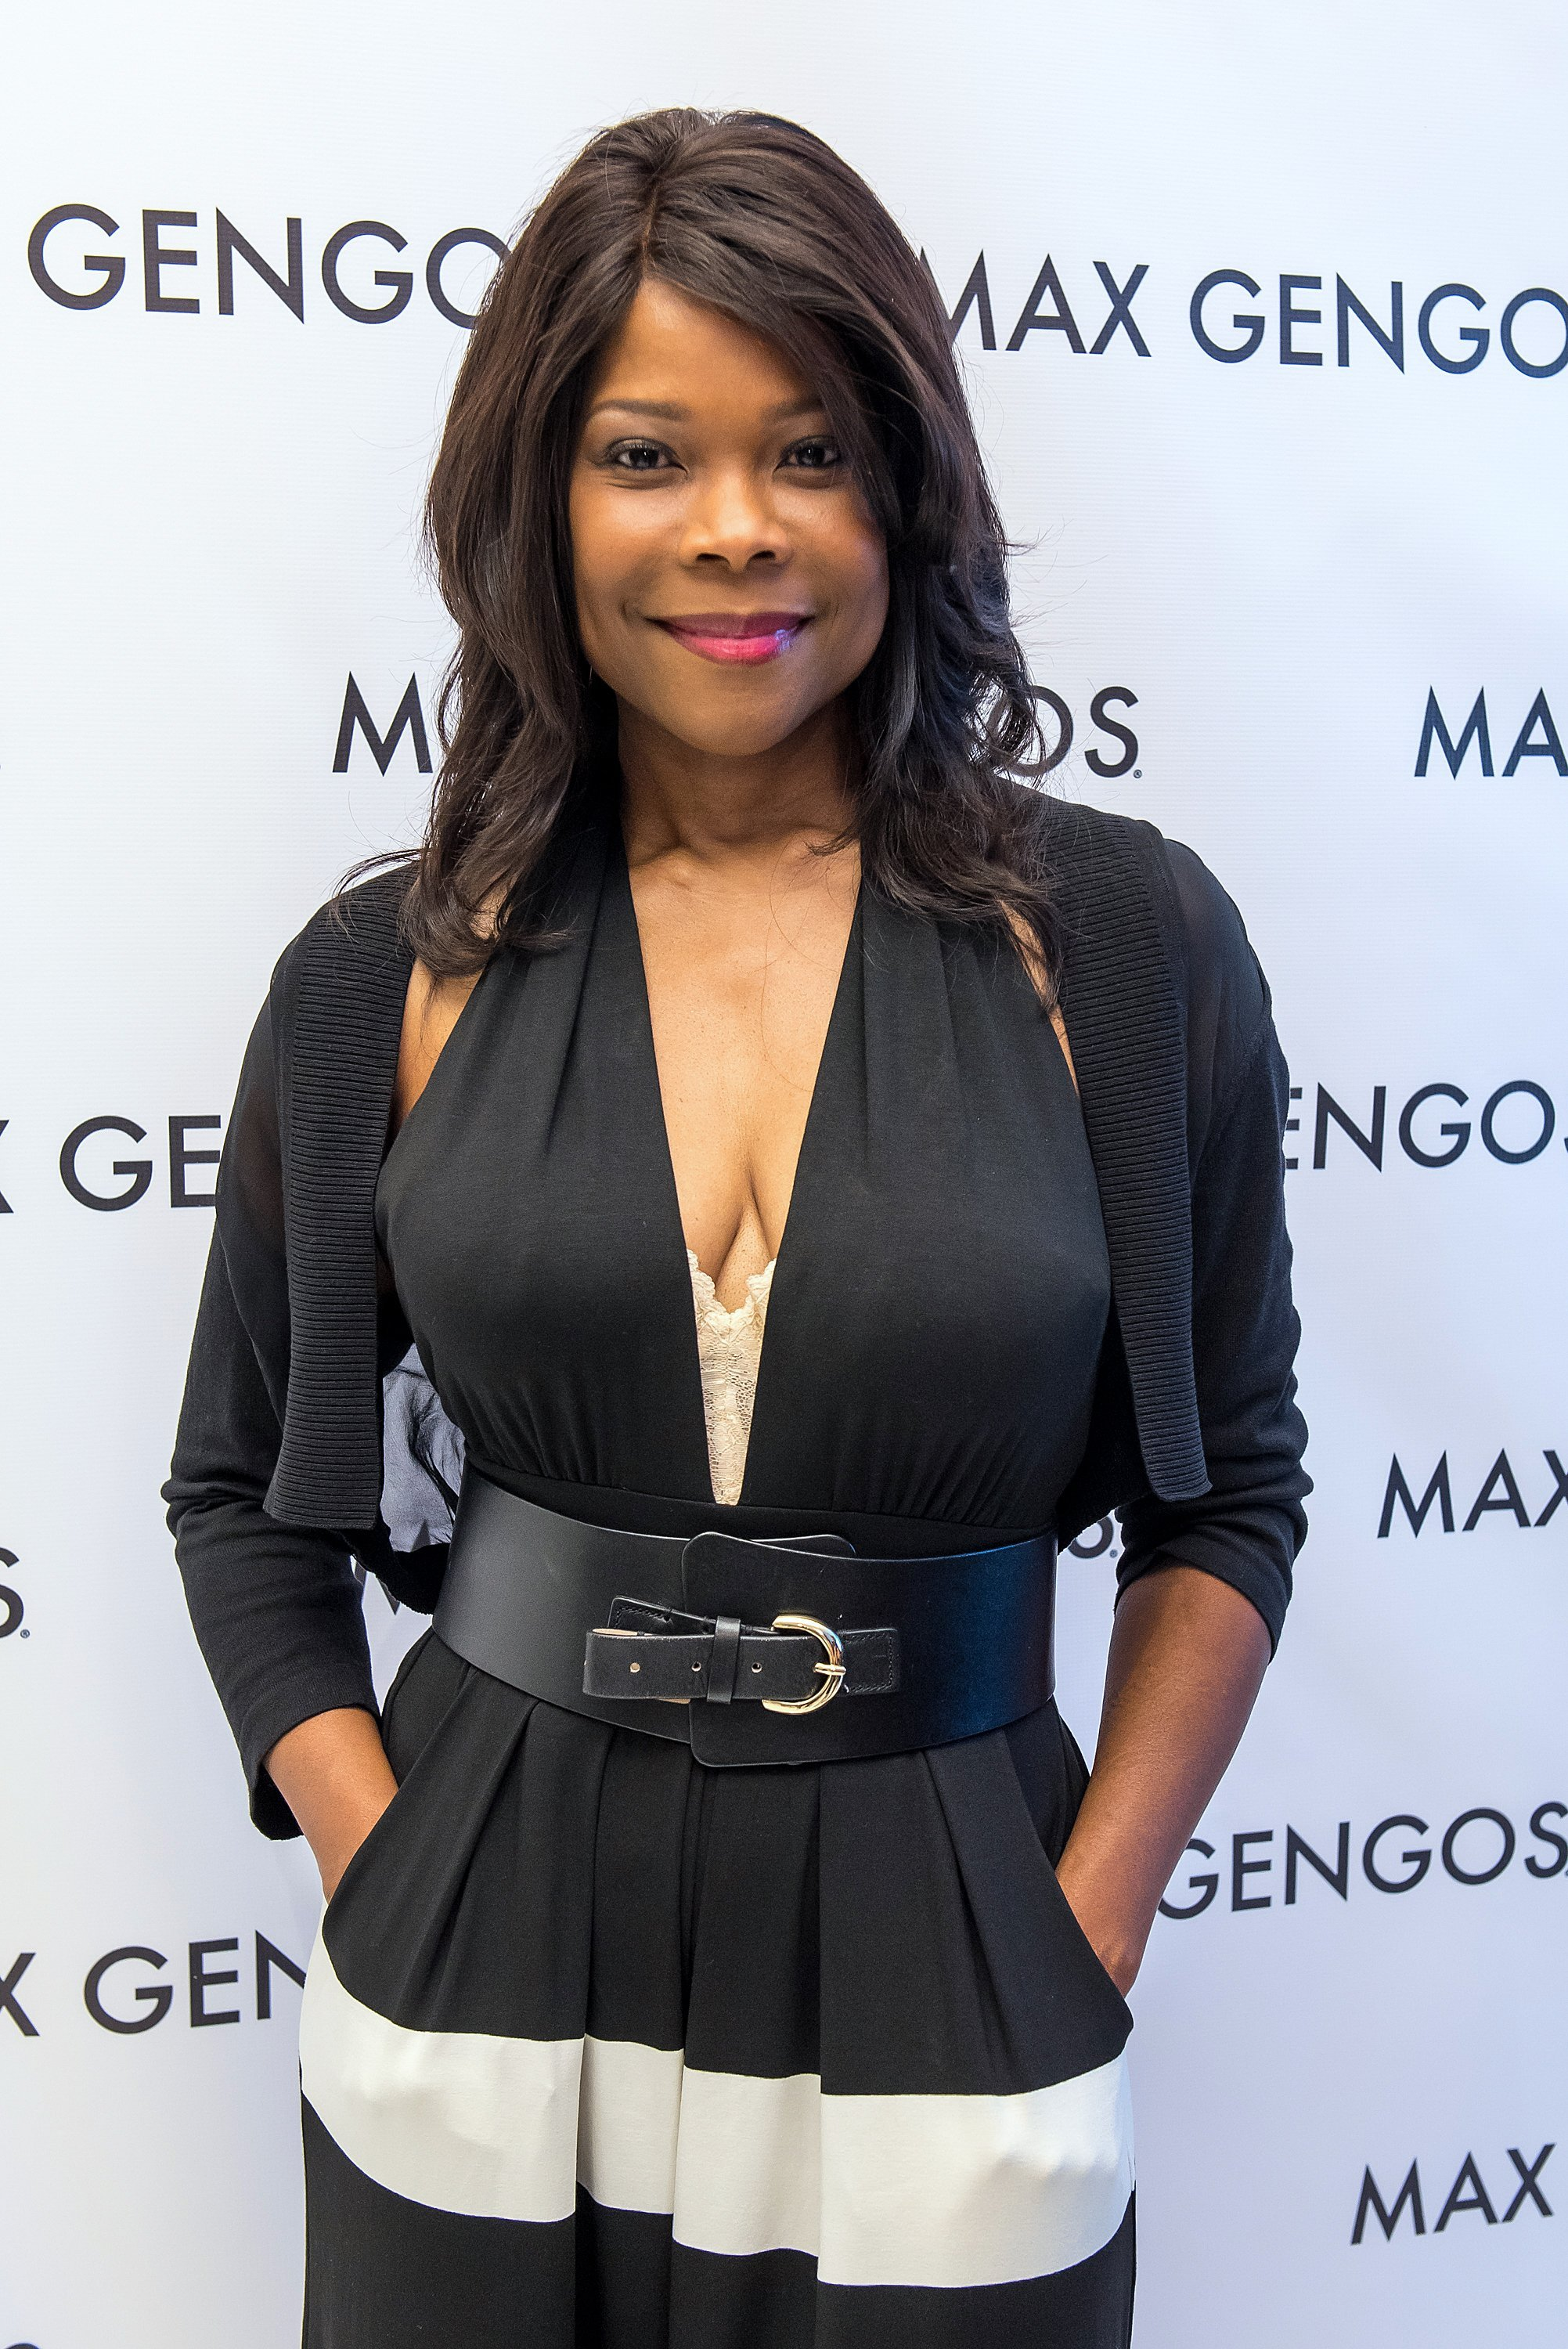 Angela Robinson at New York Fashion Week on Sept. 11, 2015 | Photo: Getty Images